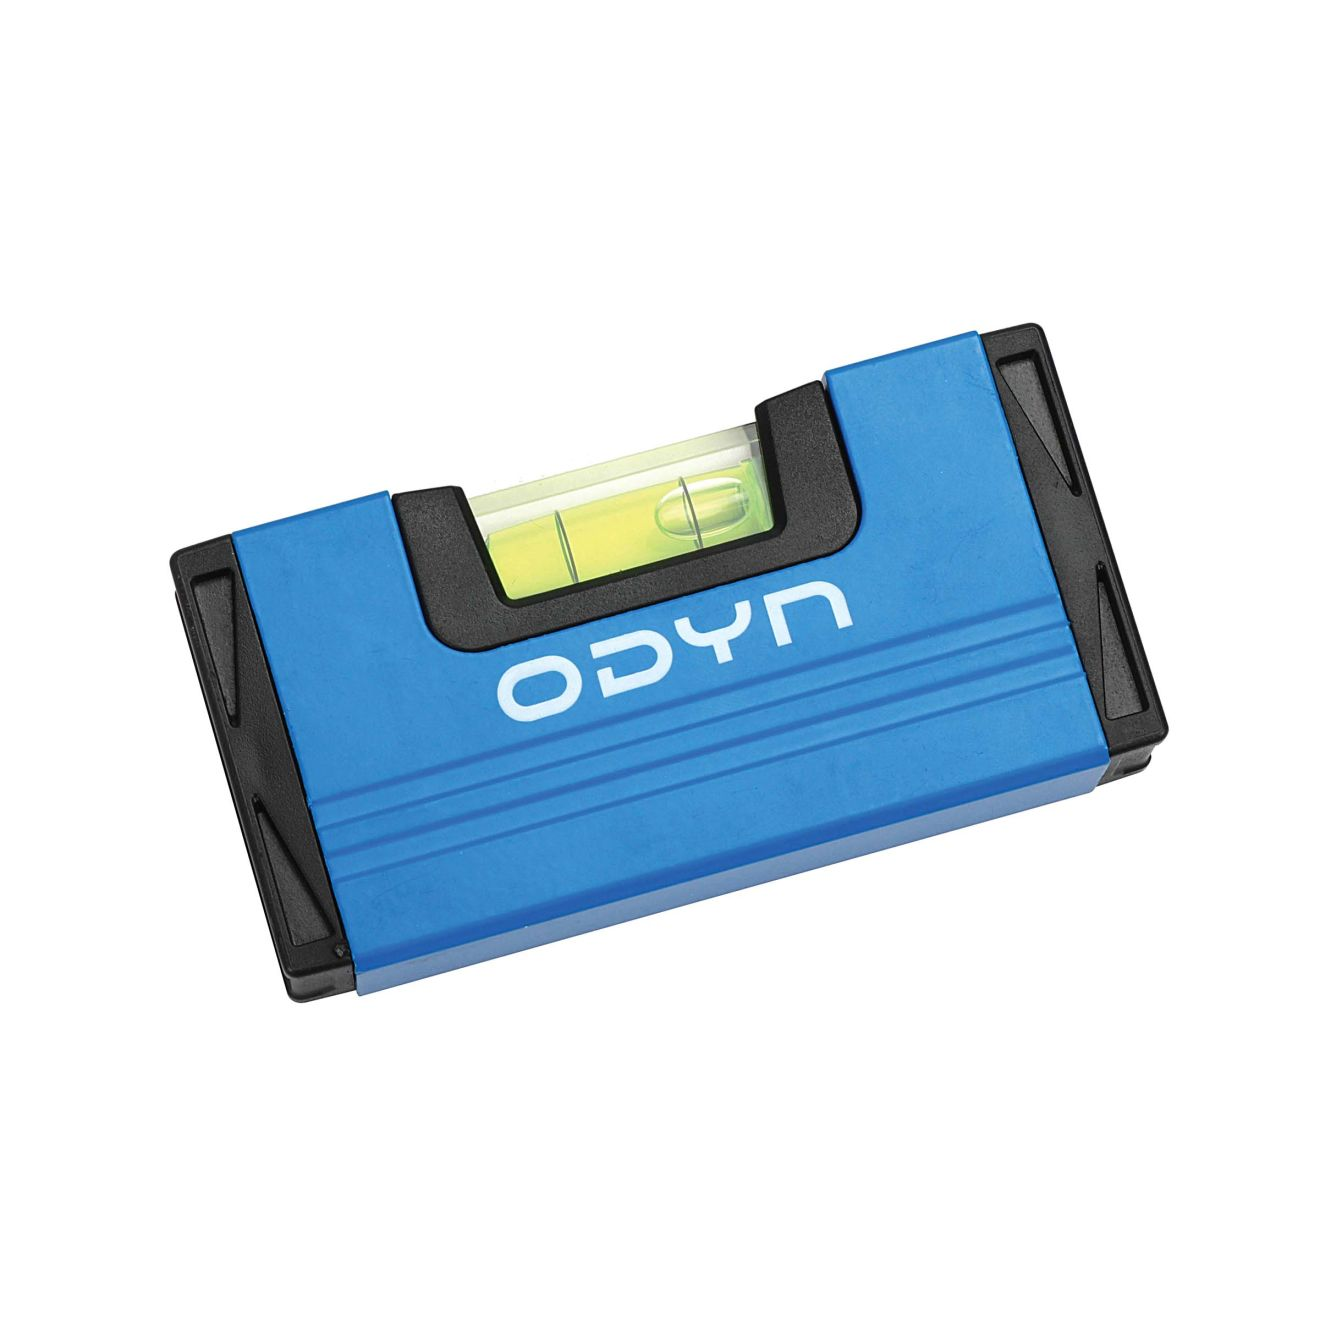 Odyn 2 in. x 4 in. Mini Spirit Level